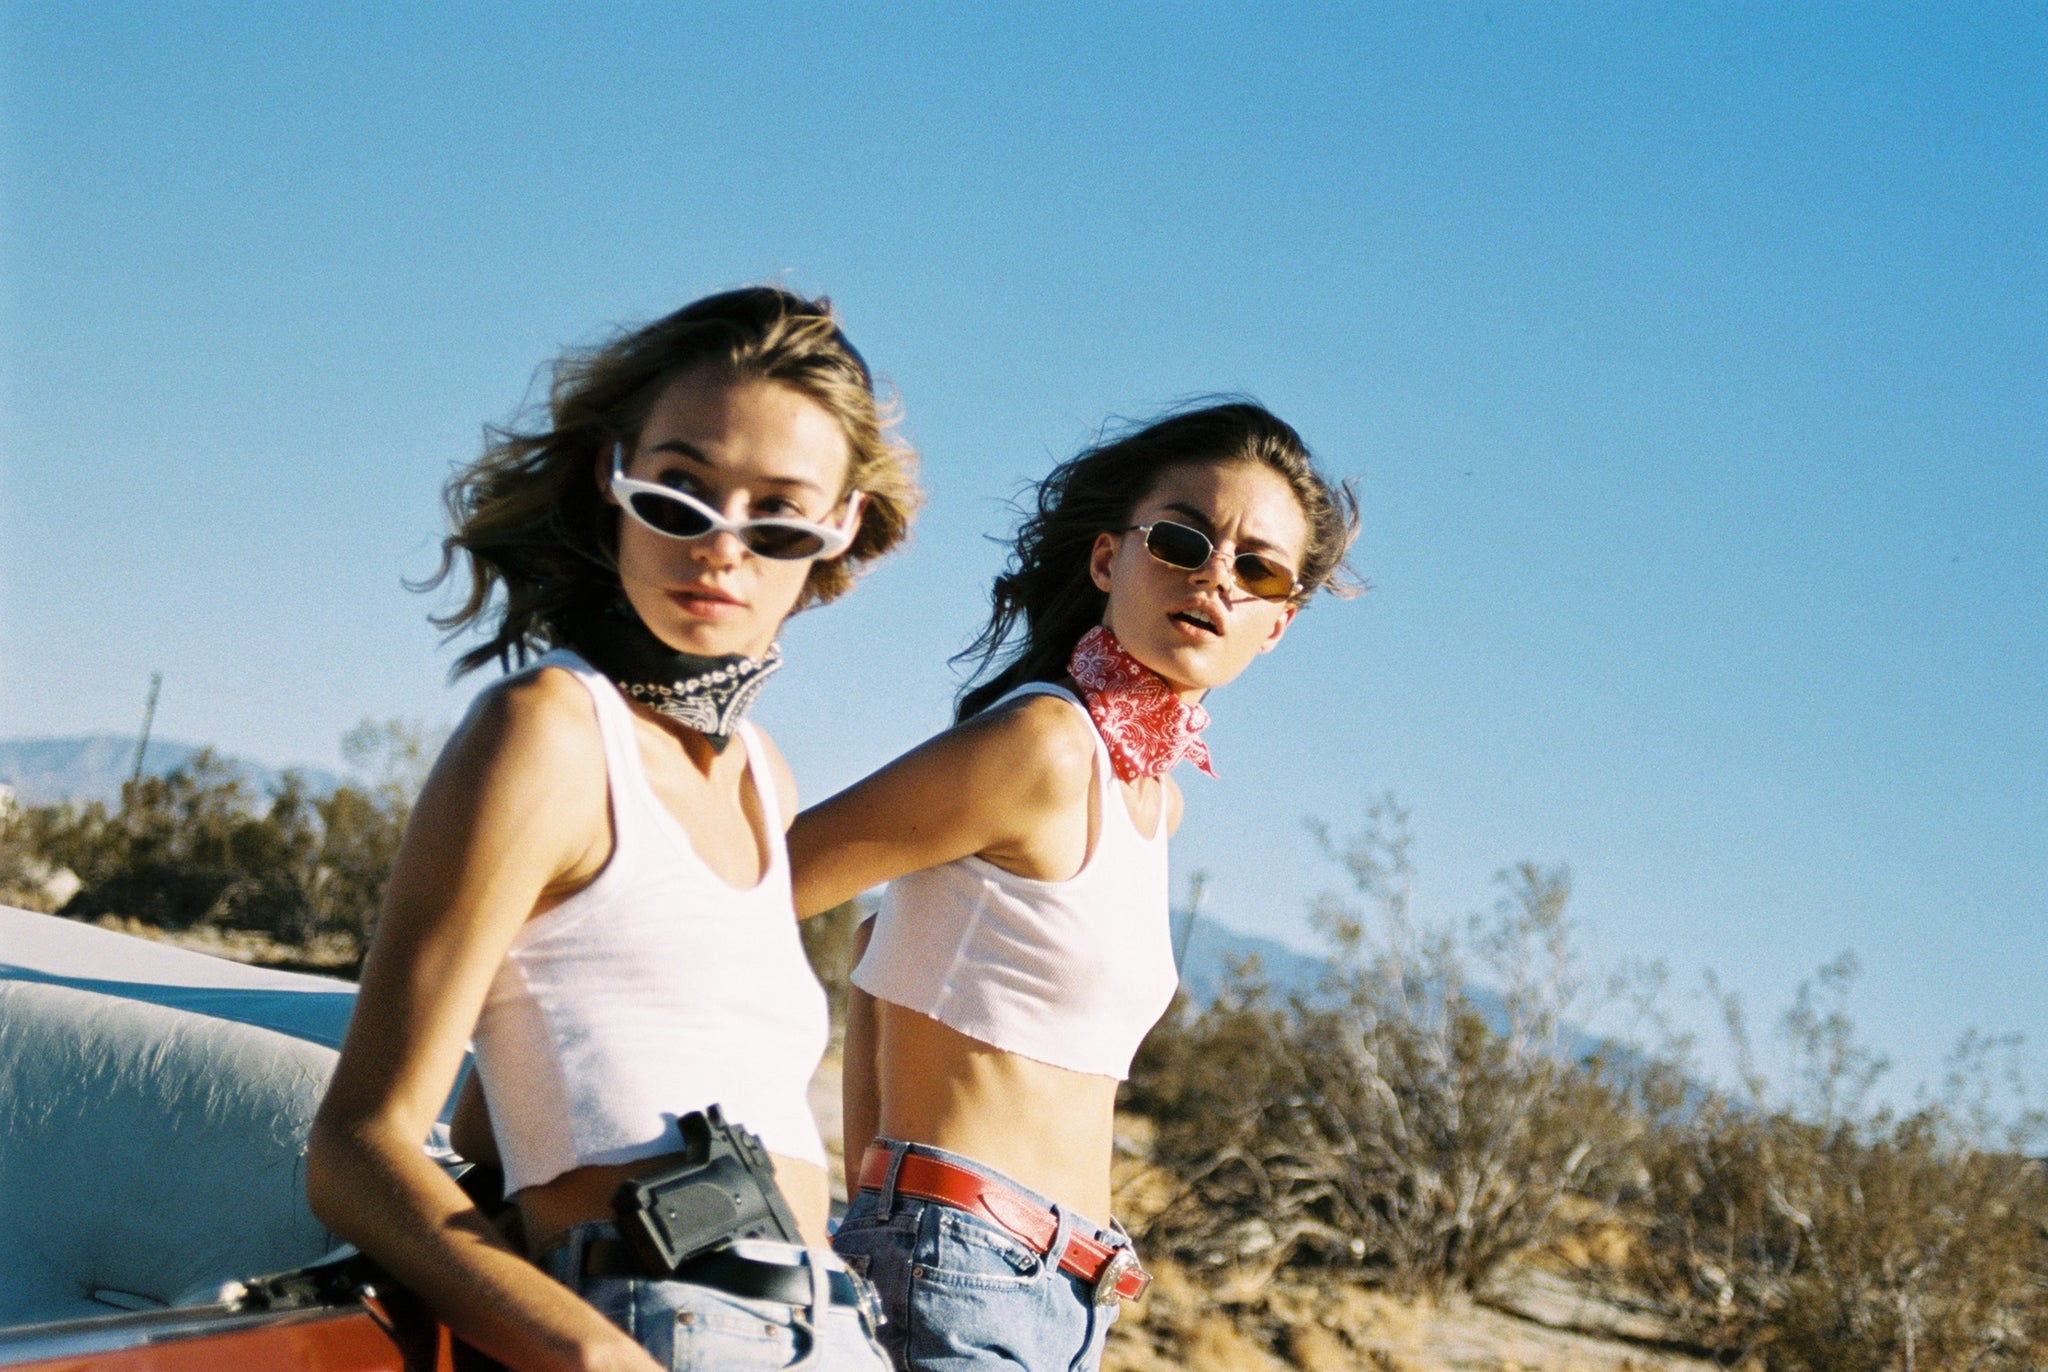 Thelma & Louise - Another Filthy Magazine - Photo 8